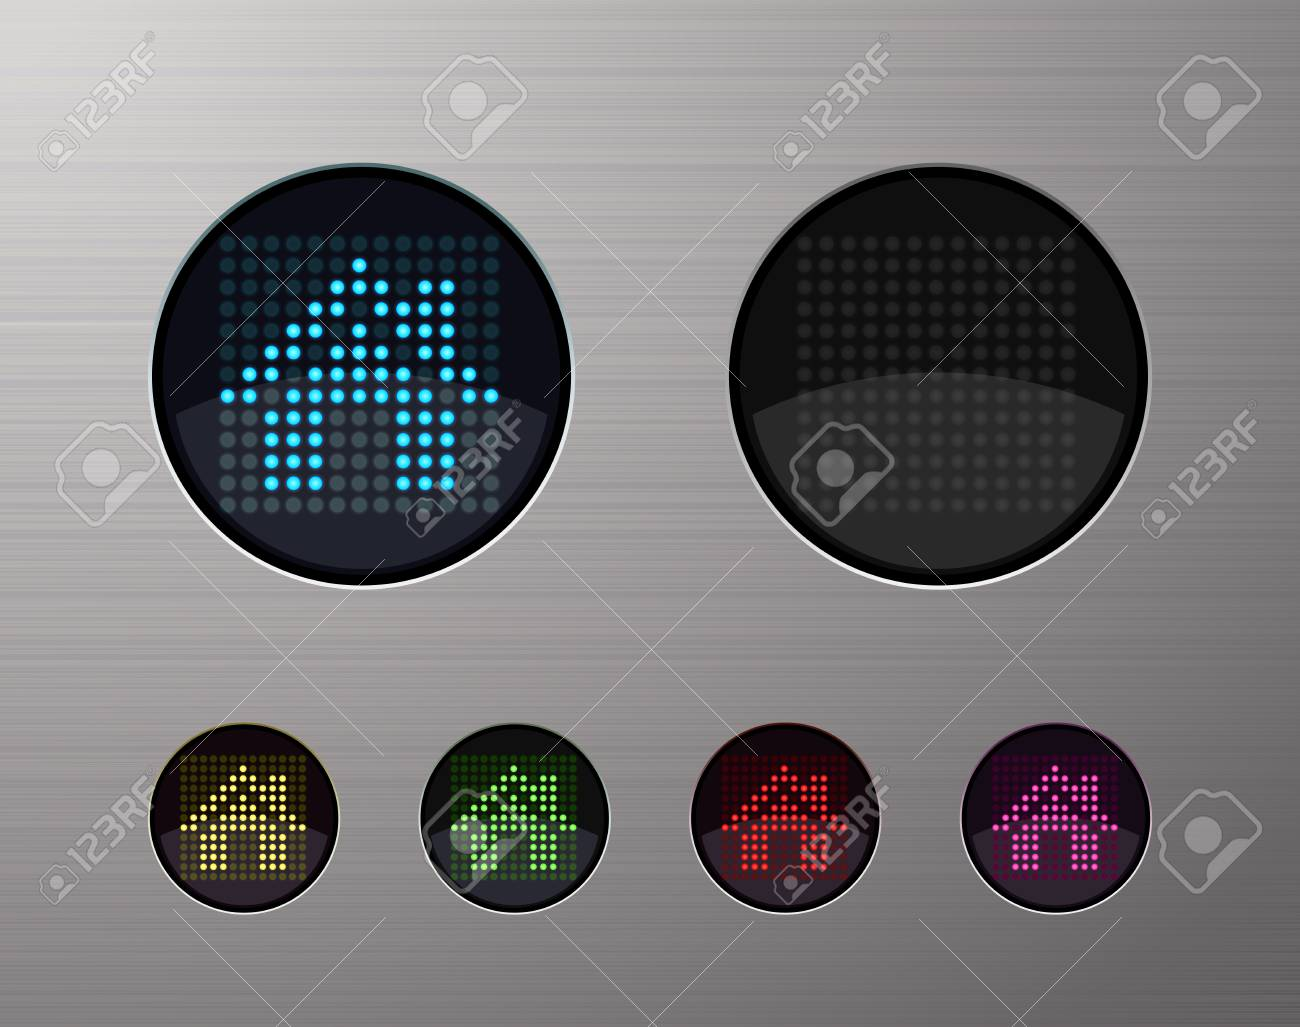 SHINY METALLIC WEB COMPUTER AND INTERNET BUTTONS Stock Vector - 15940965